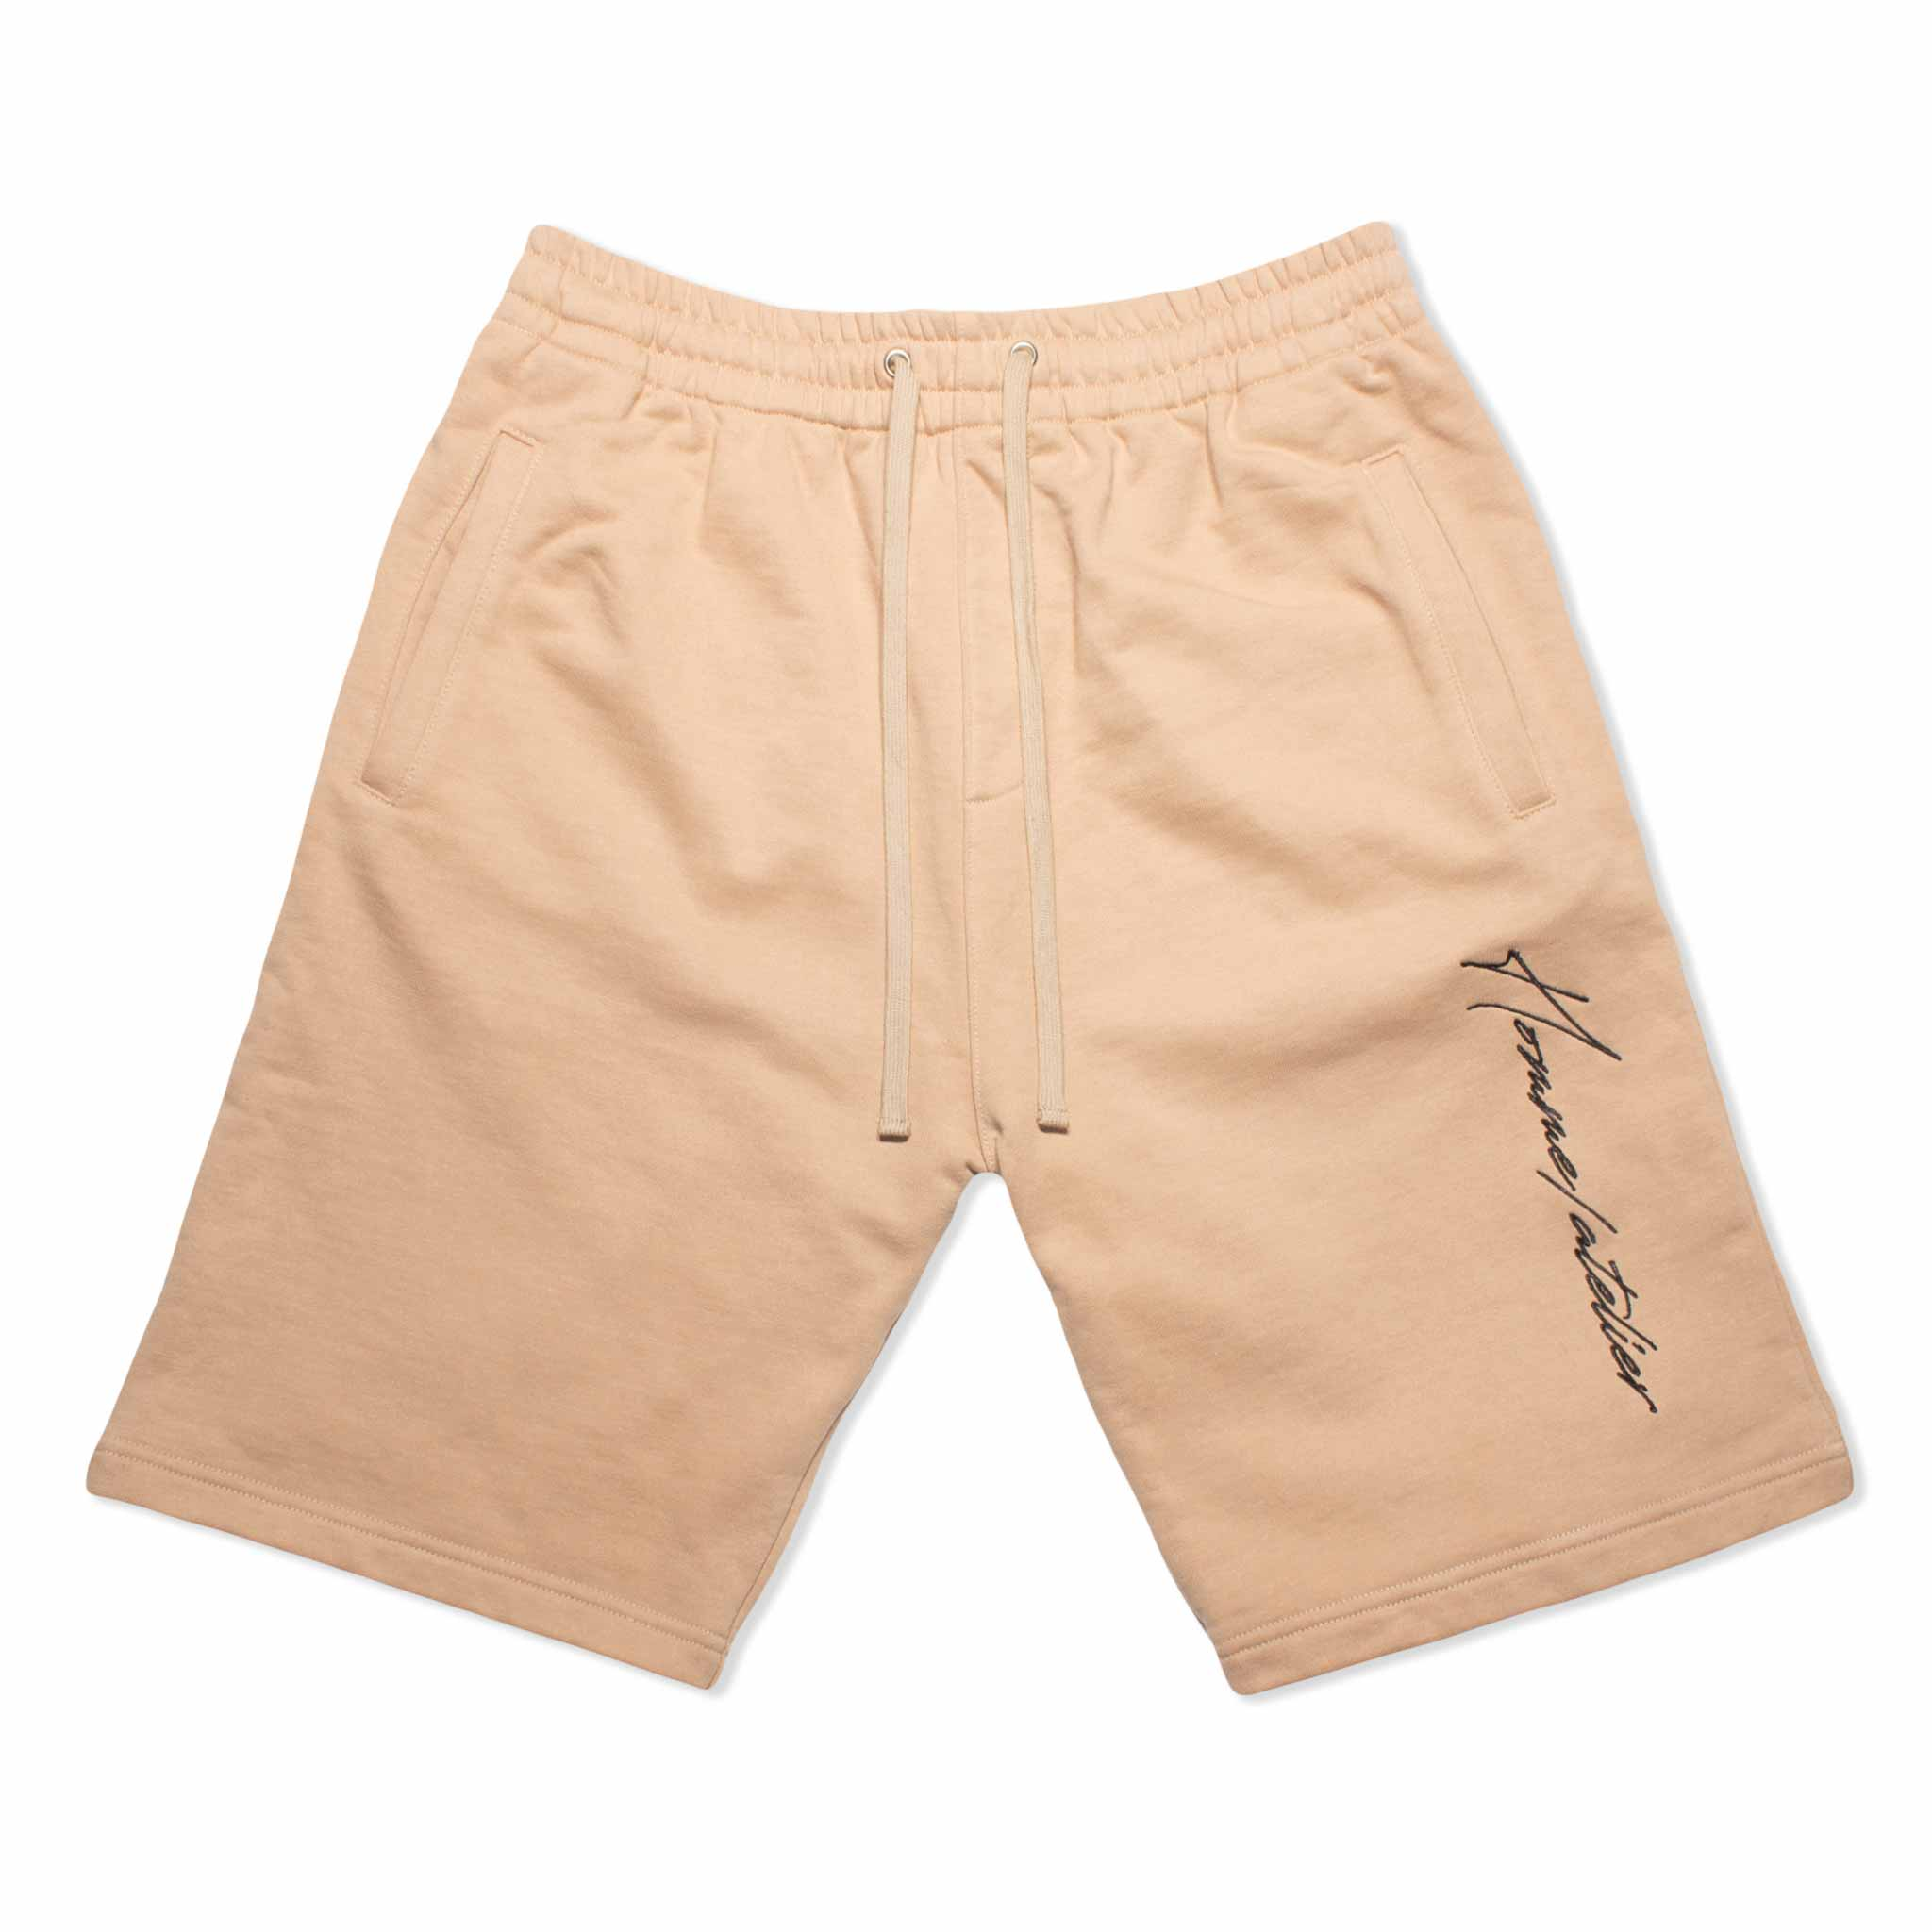 HOMME+ Embroidery Shorts Beige